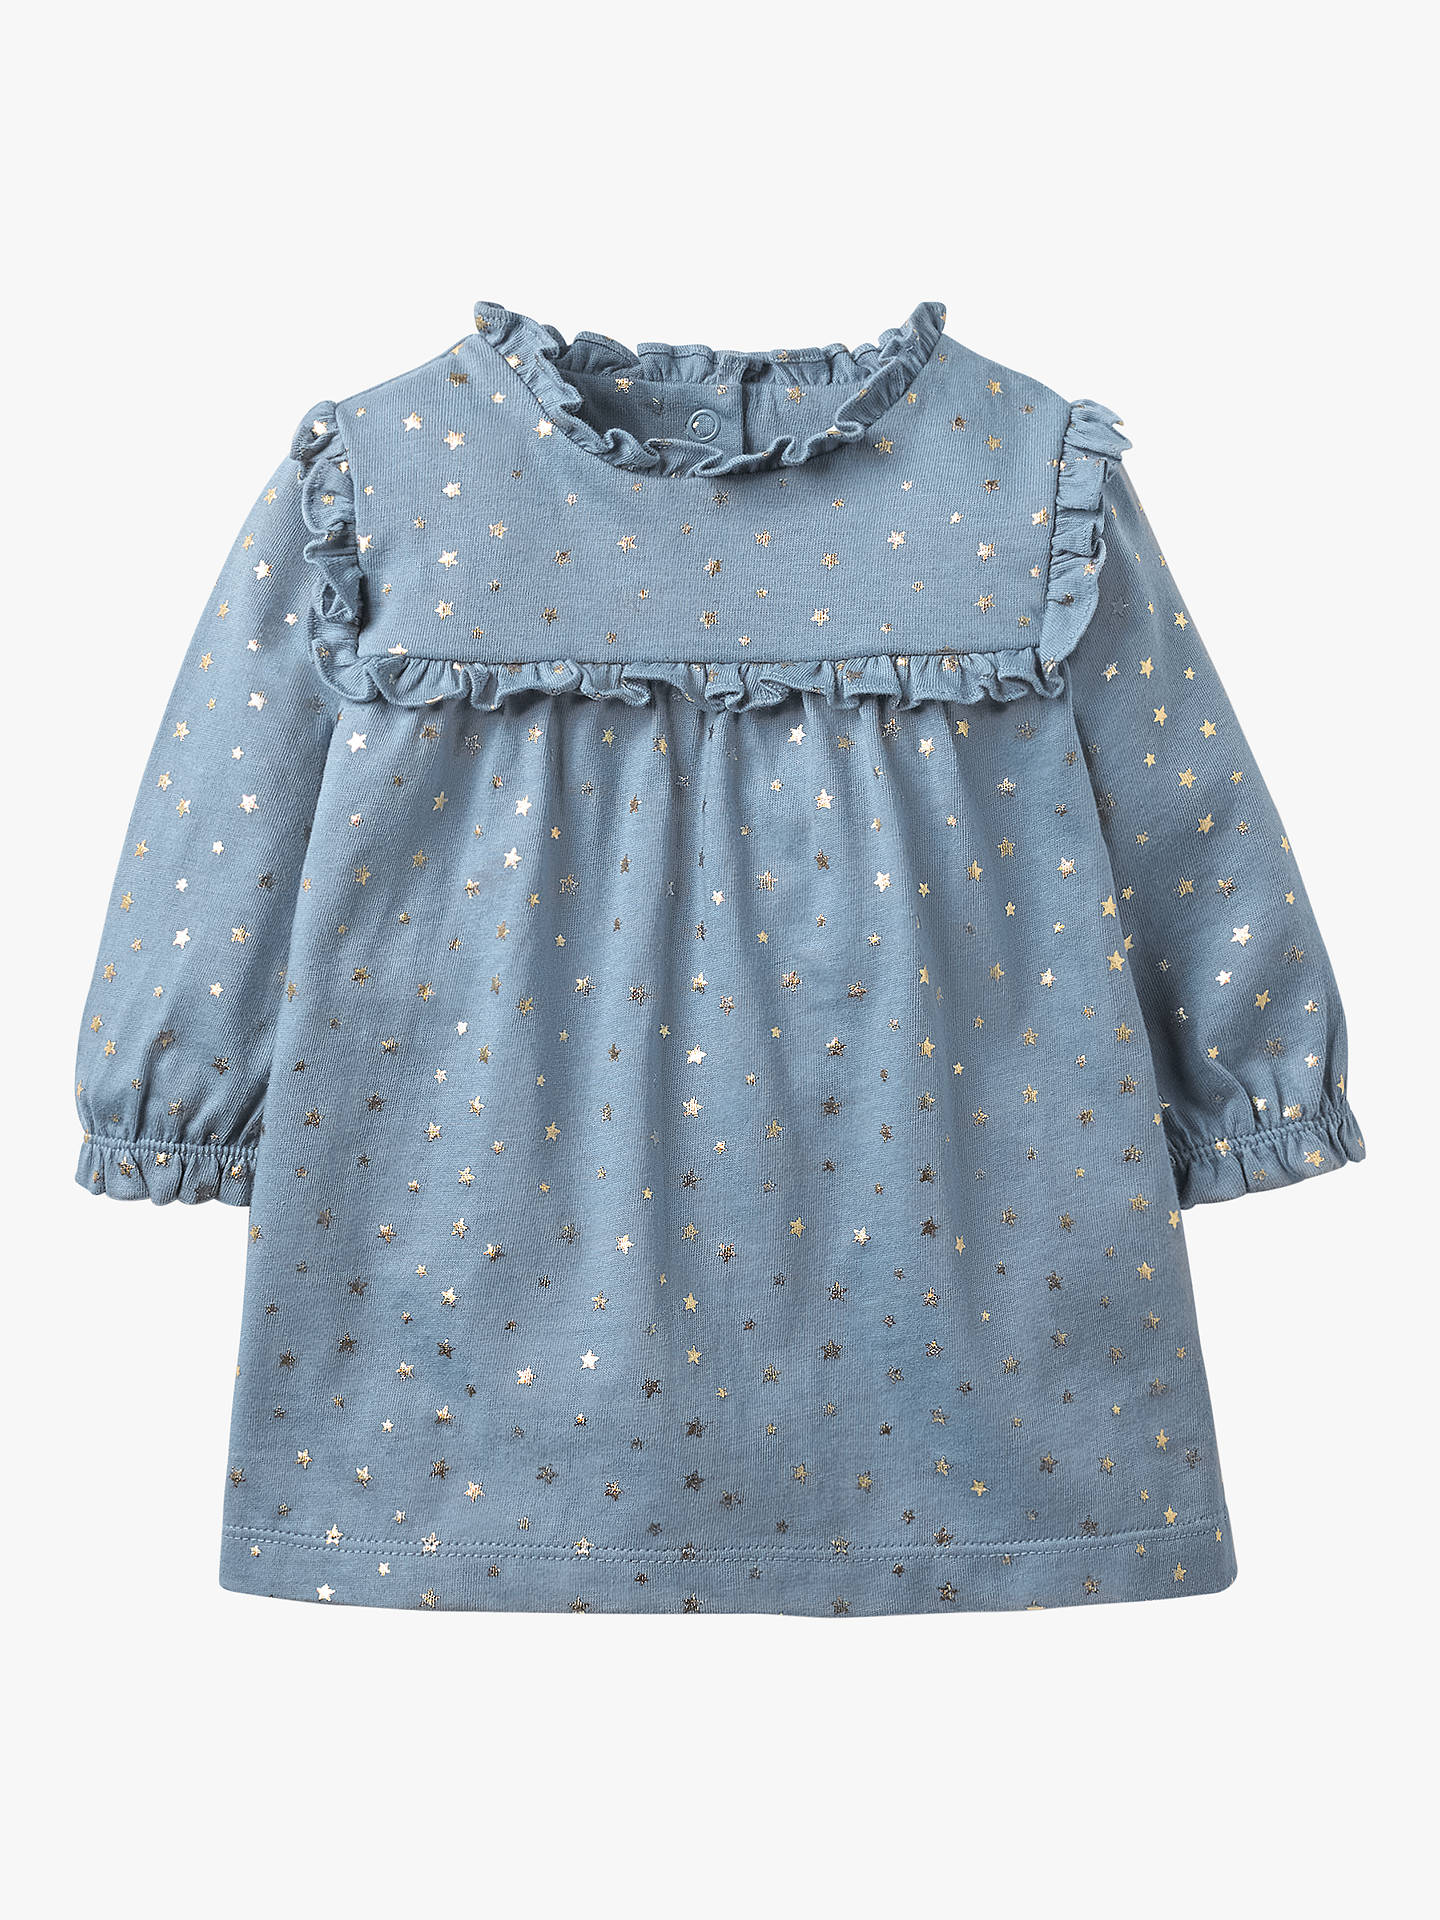 BuyMini Boden Baby Star Print Jersey Dress, Boathouse Blue Star, 3-4 years Online at johnlewis.com